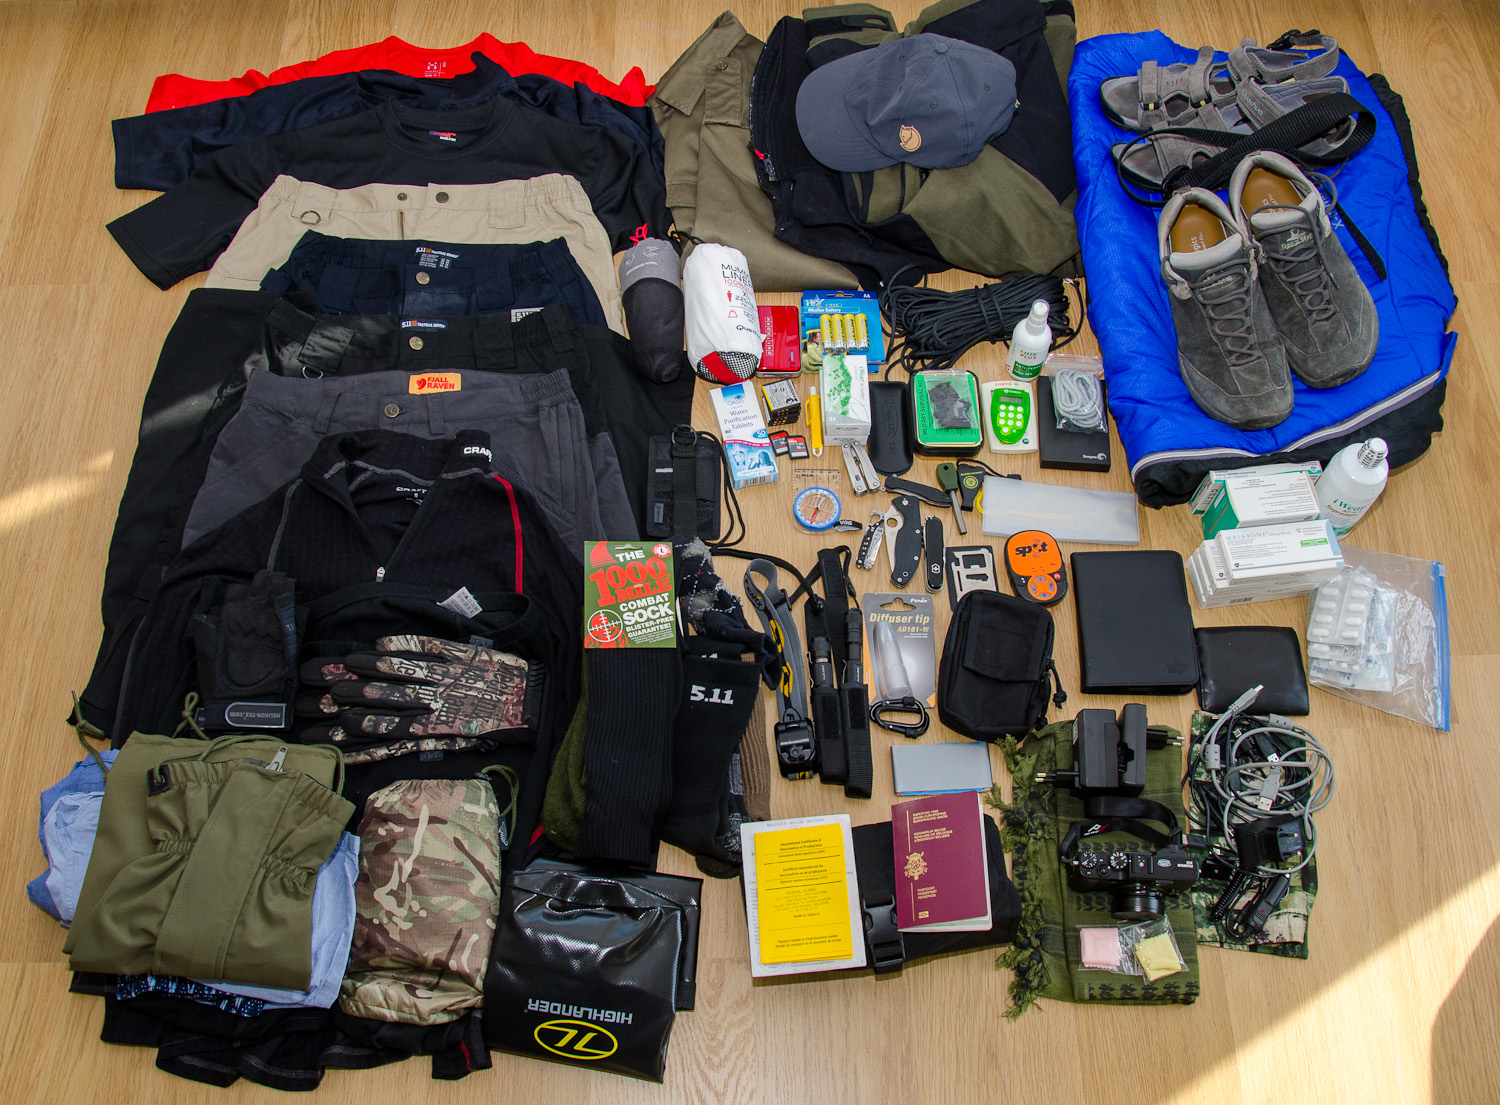 How To Pack A Hiking Backpack wUkUlg0x